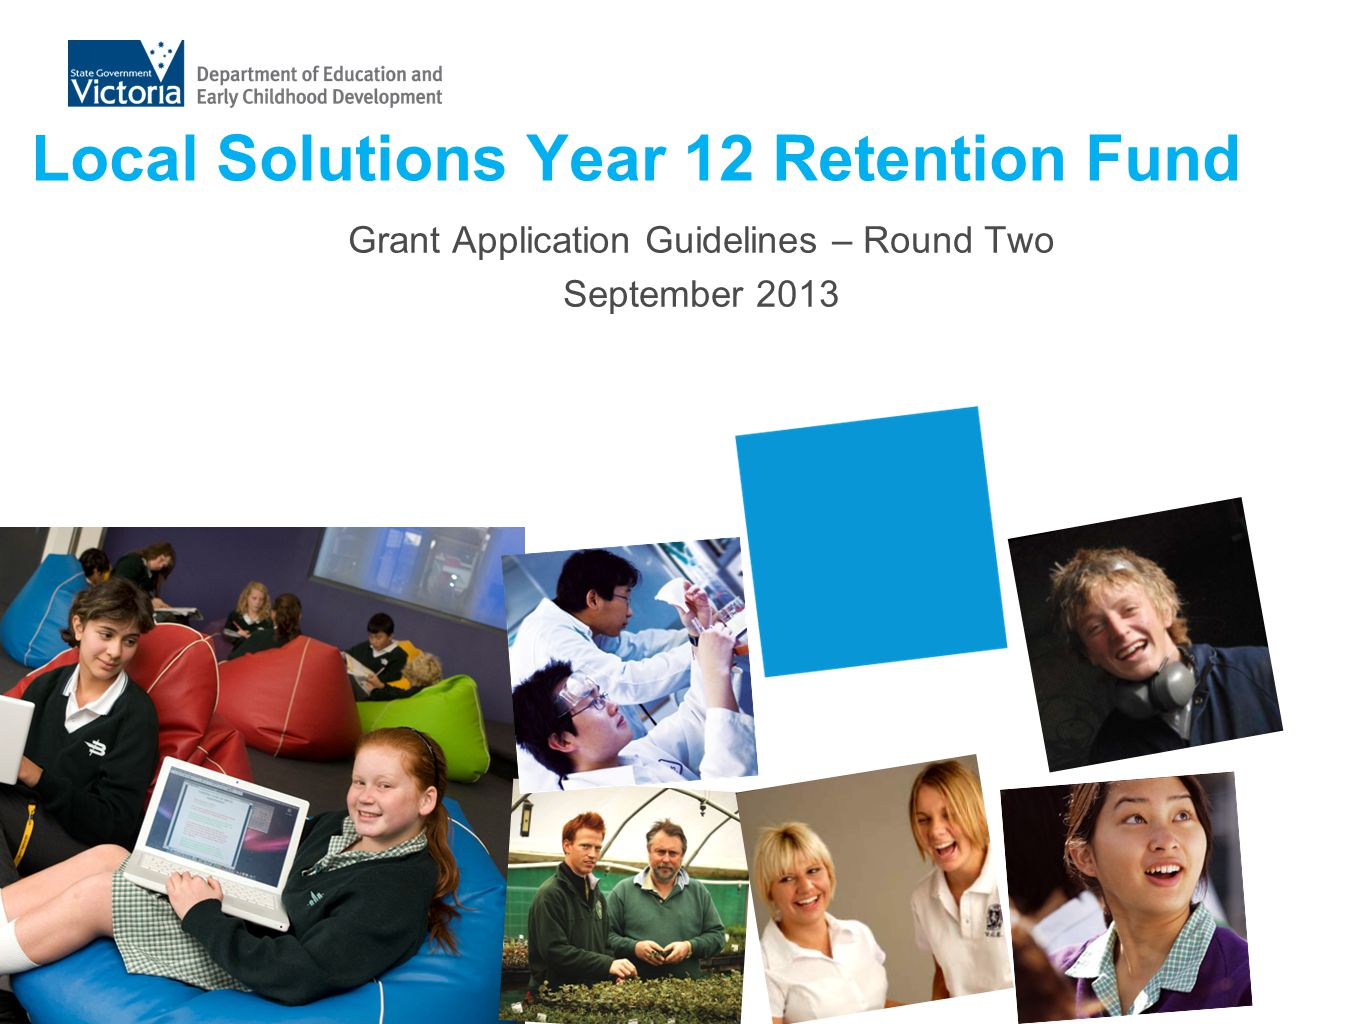 Local Solutions Year 12 Retention Fund Grant Application Guidelines – Round Two September 2013